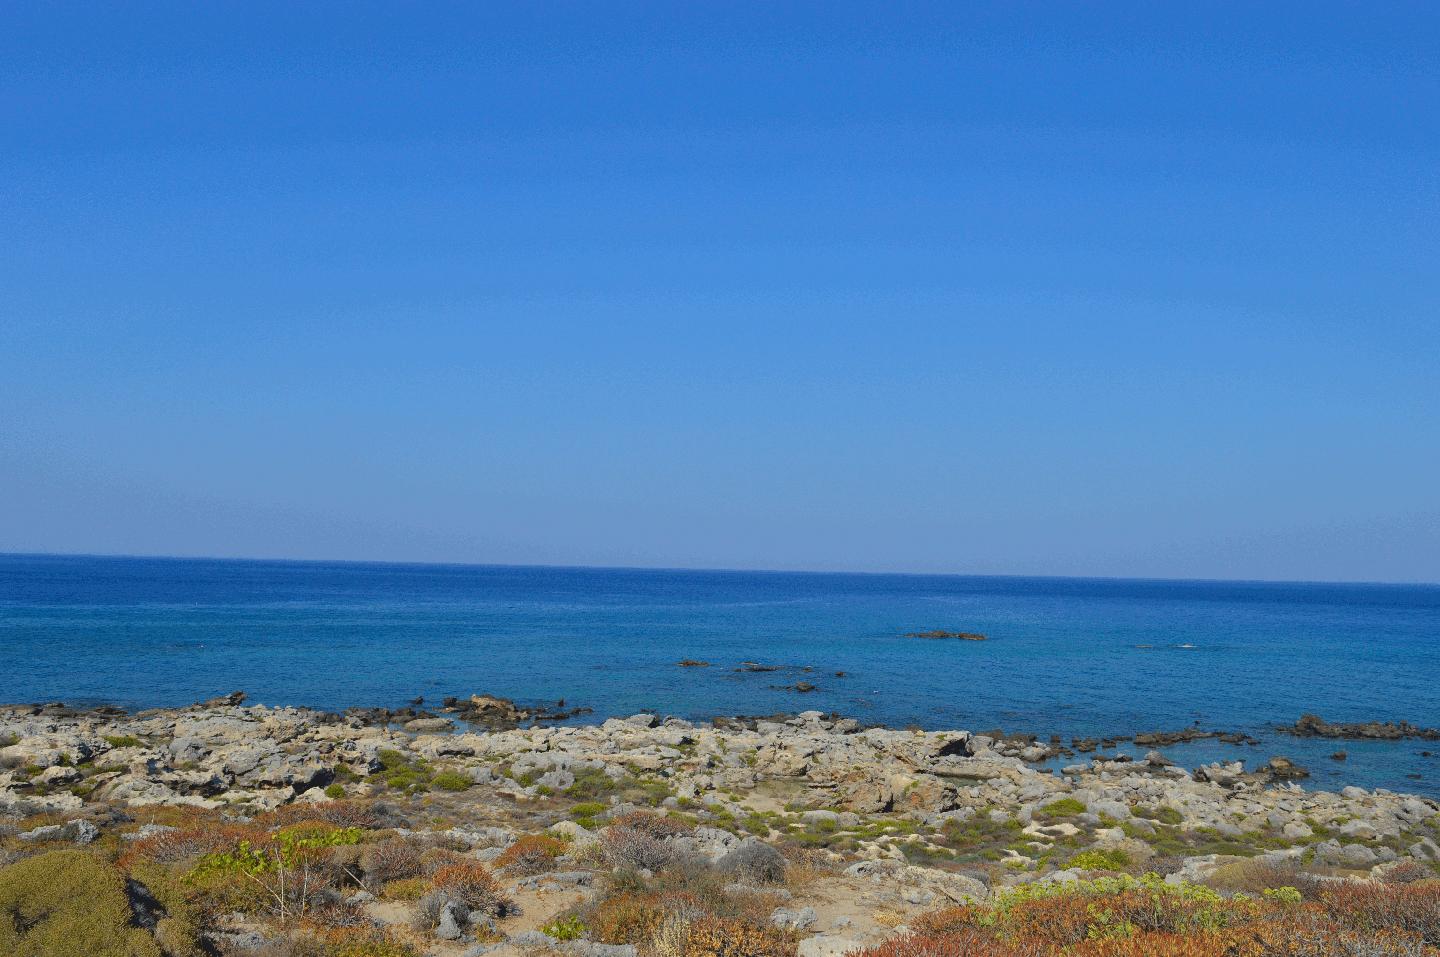 View from Elafonisi island